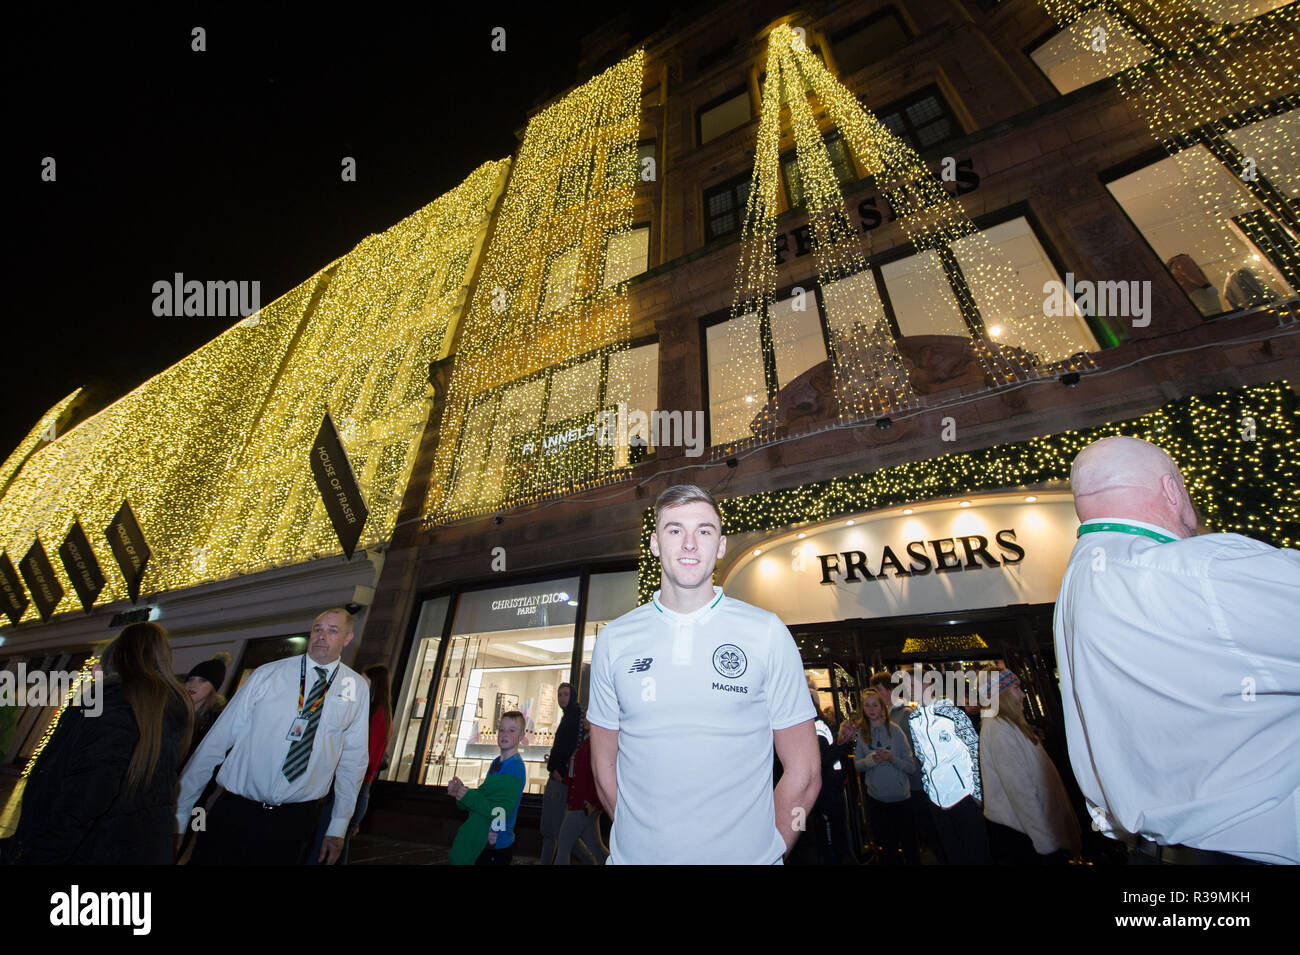 Glasgow, Scotland, UK. 22nd November 2018. Celtic's ace, Keiran Tierney switches on the Iconic Frasers Christmas lights at Mike Ashley's new House Of Fraser in Glasgow.  The event is to raise funds for St Margaret of Scotland Hospice in Clydebank. Credit: Colin Fisher/Alamy Live News - Stock Image